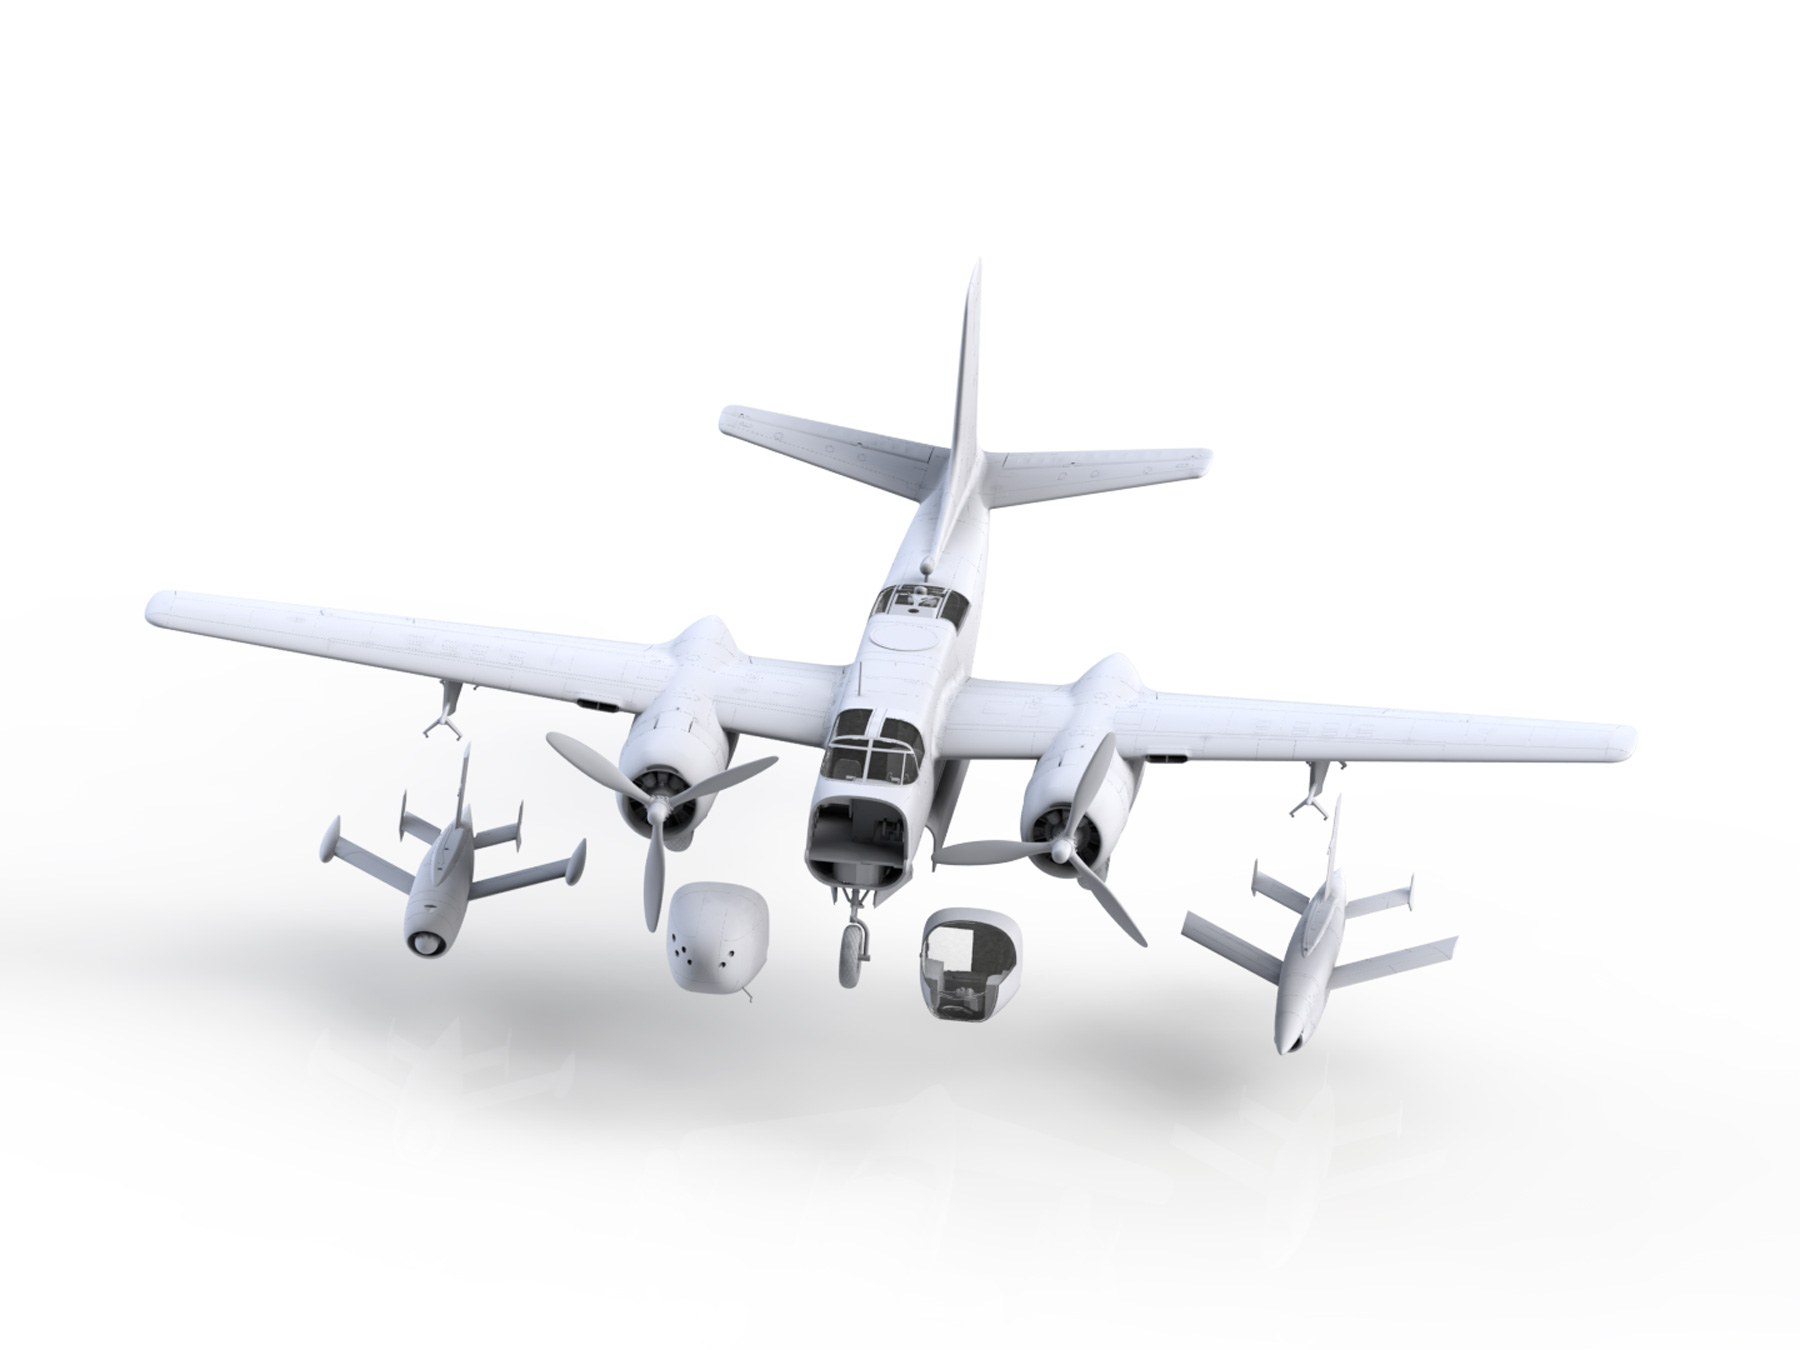 48286_DB-26B.C_with_Q-2-drones_renders_cropped_ICM